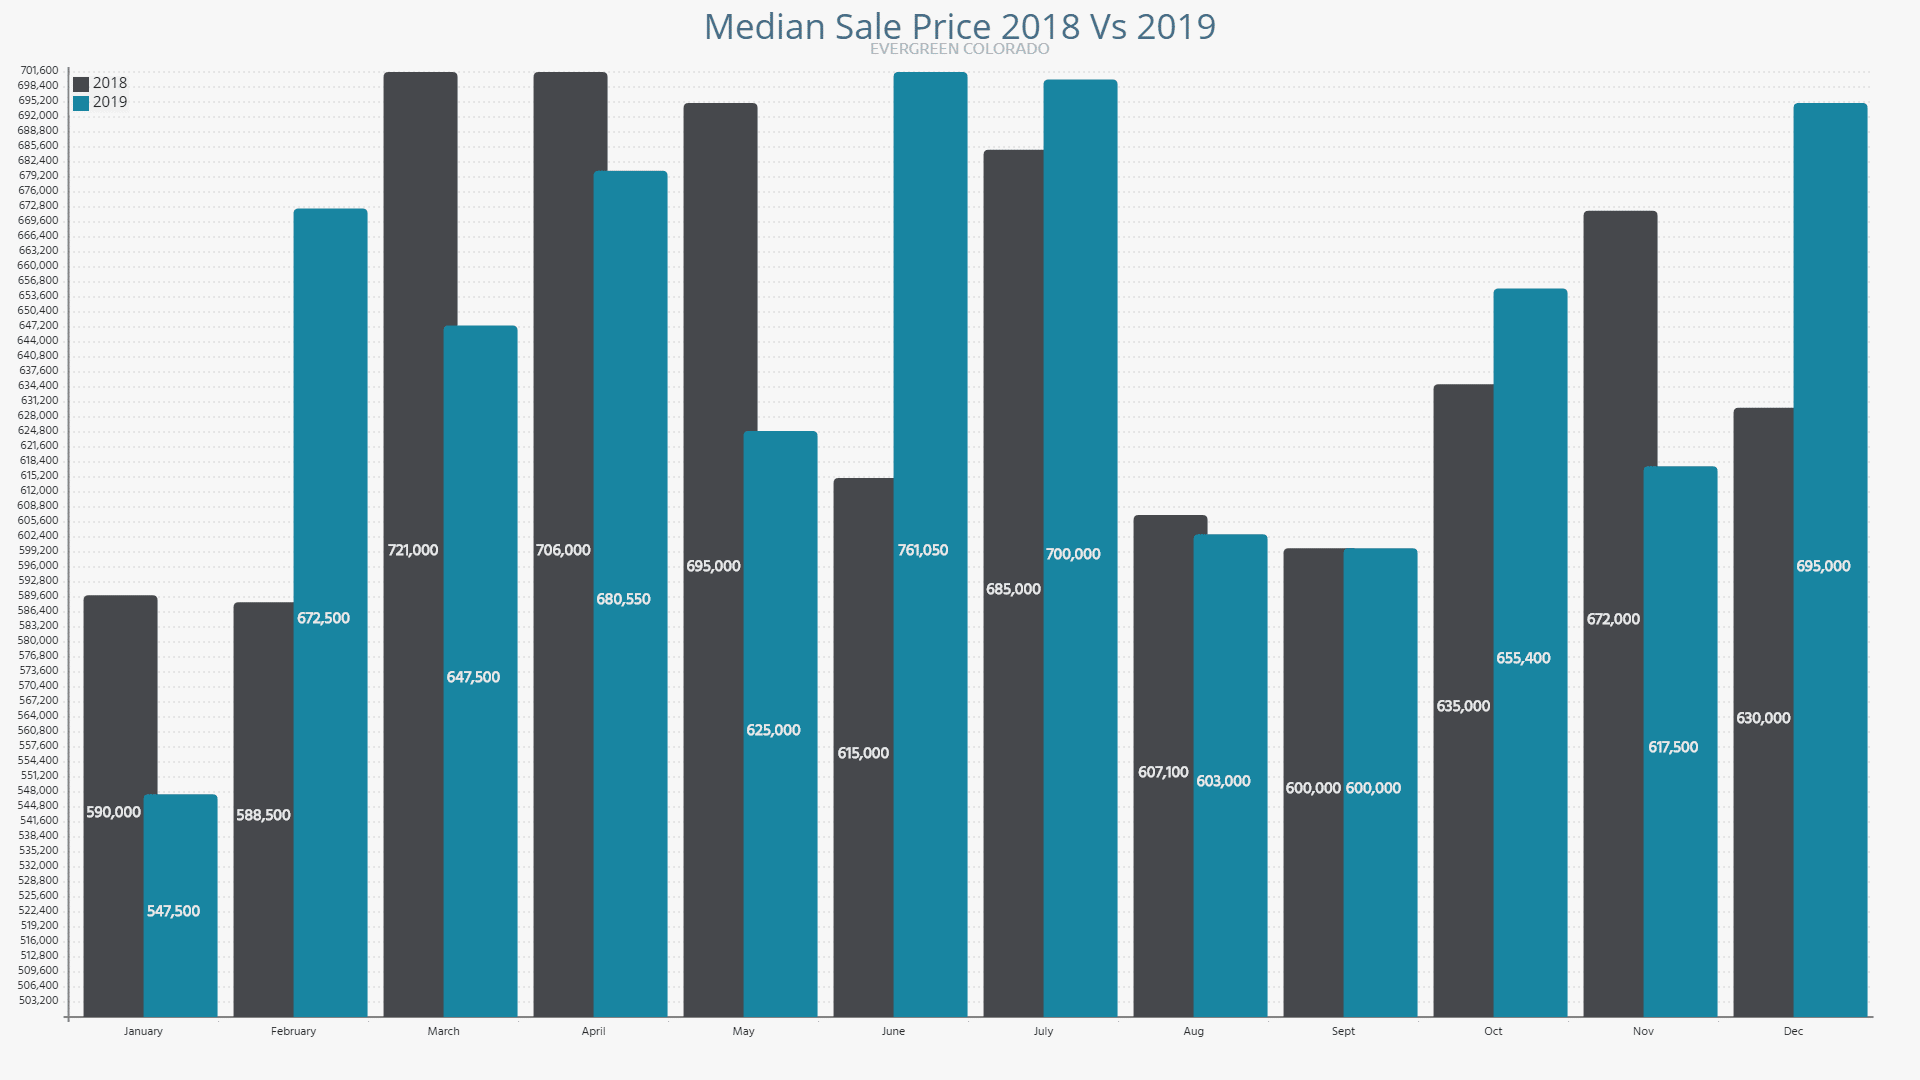 Evergreen Median Sale Price 2018 vs 2019